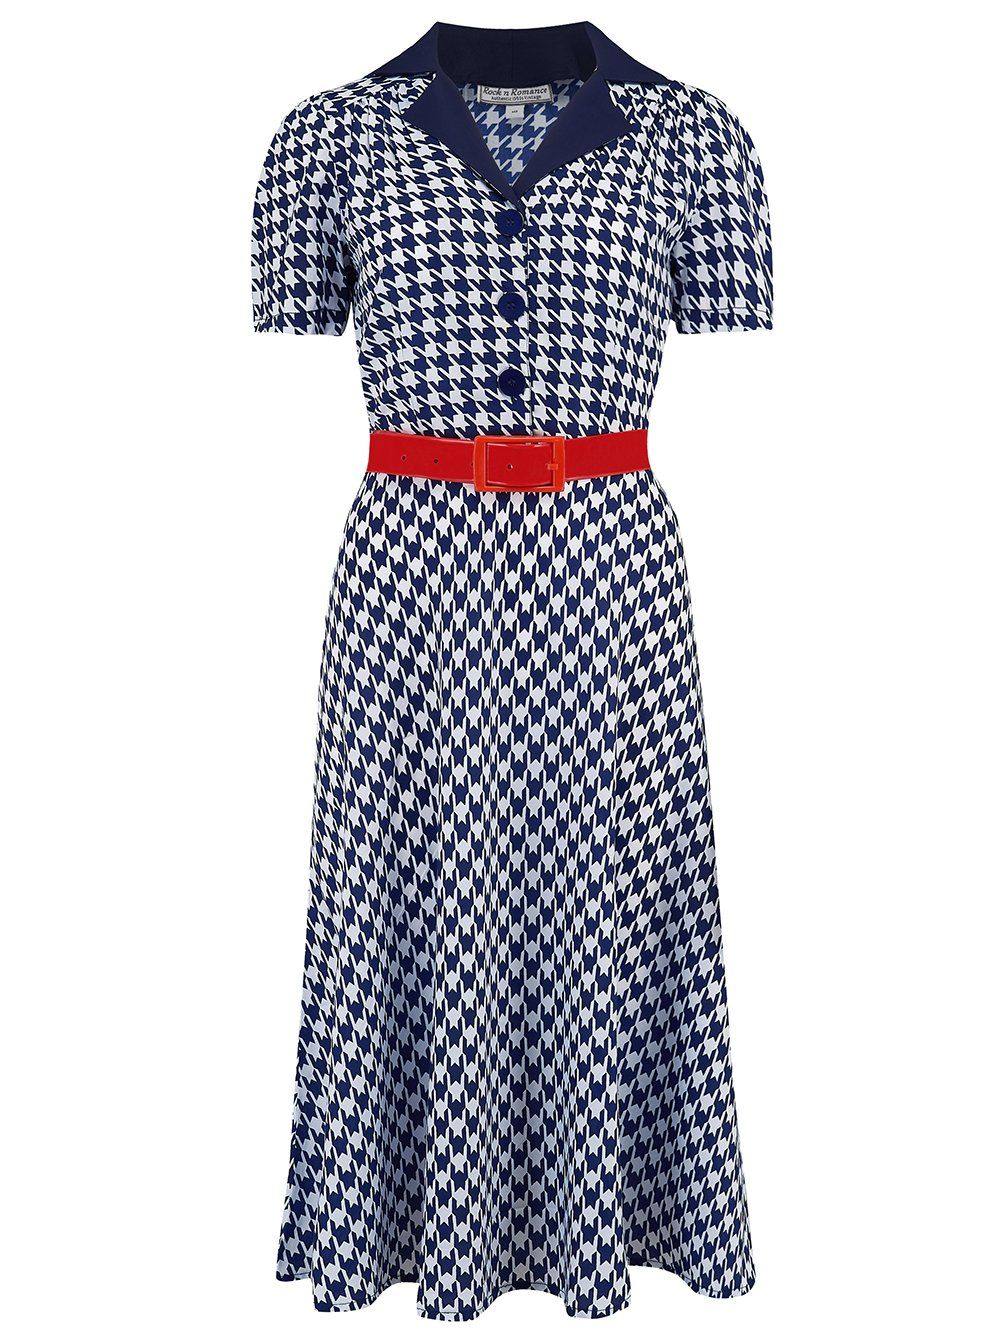 Lola_dress_navy_houndstooth_1a_1_1024x1024@2x